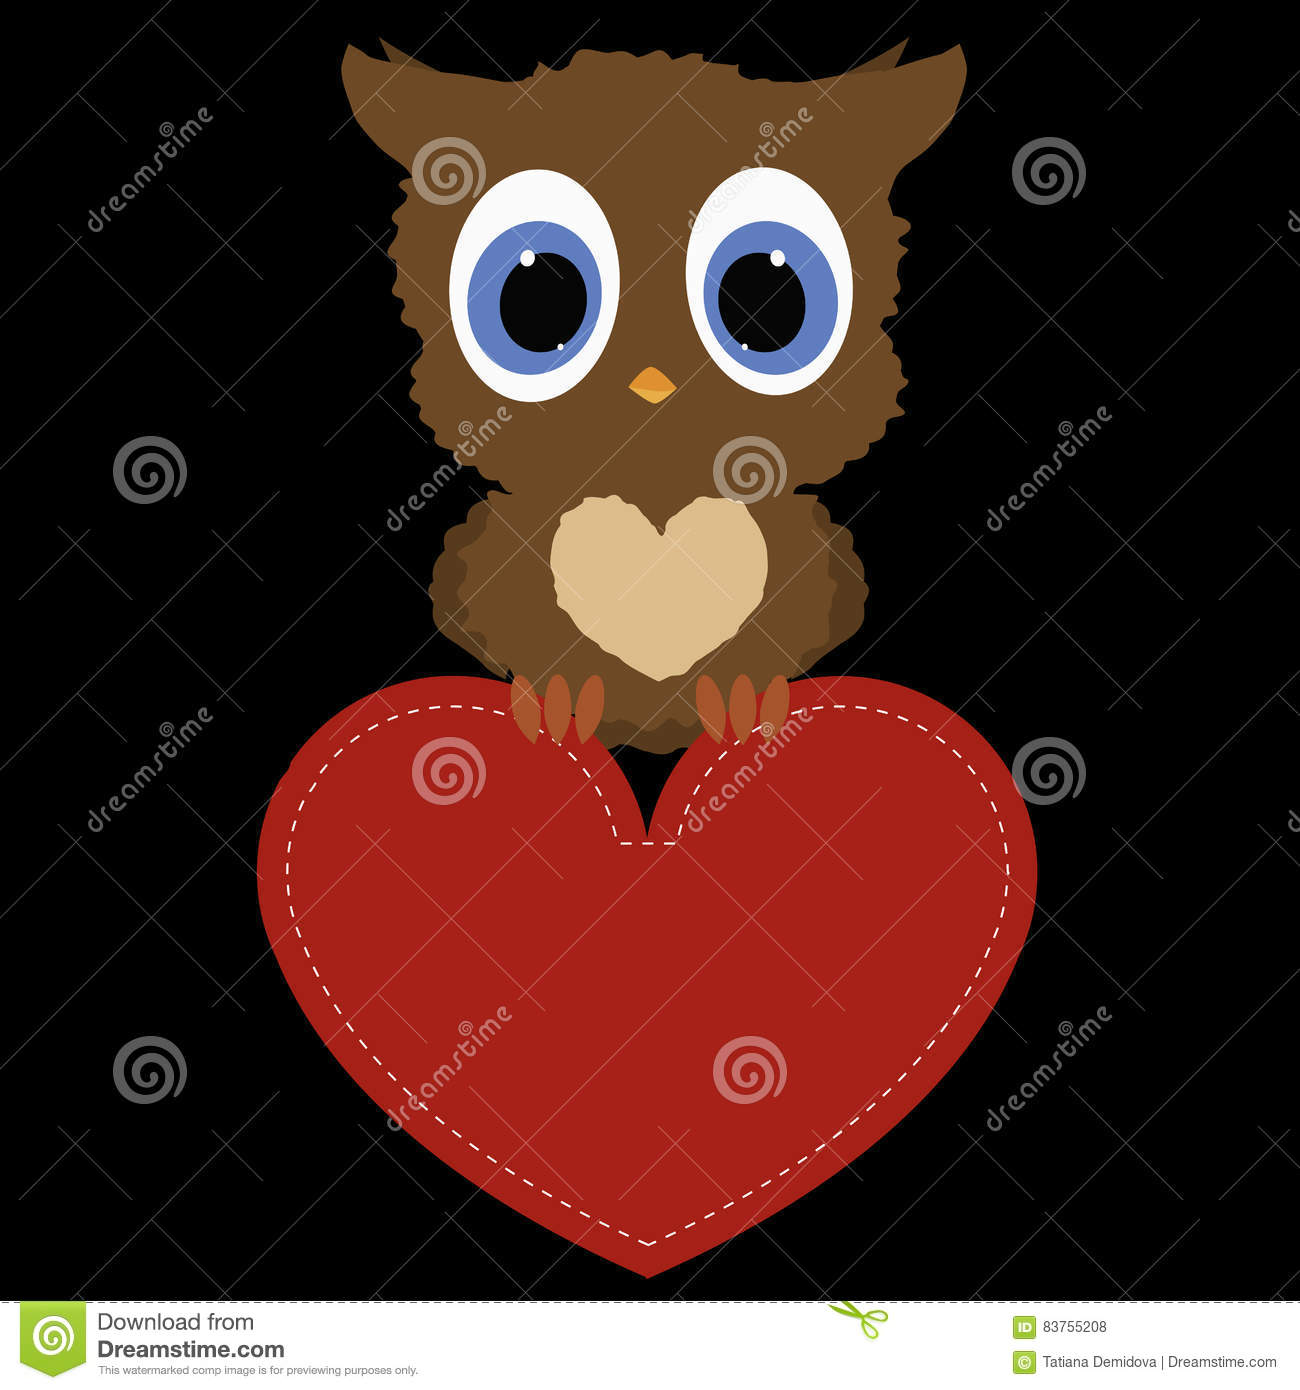 Icon Owl Holding A Red Heart Frame On Black Background Template